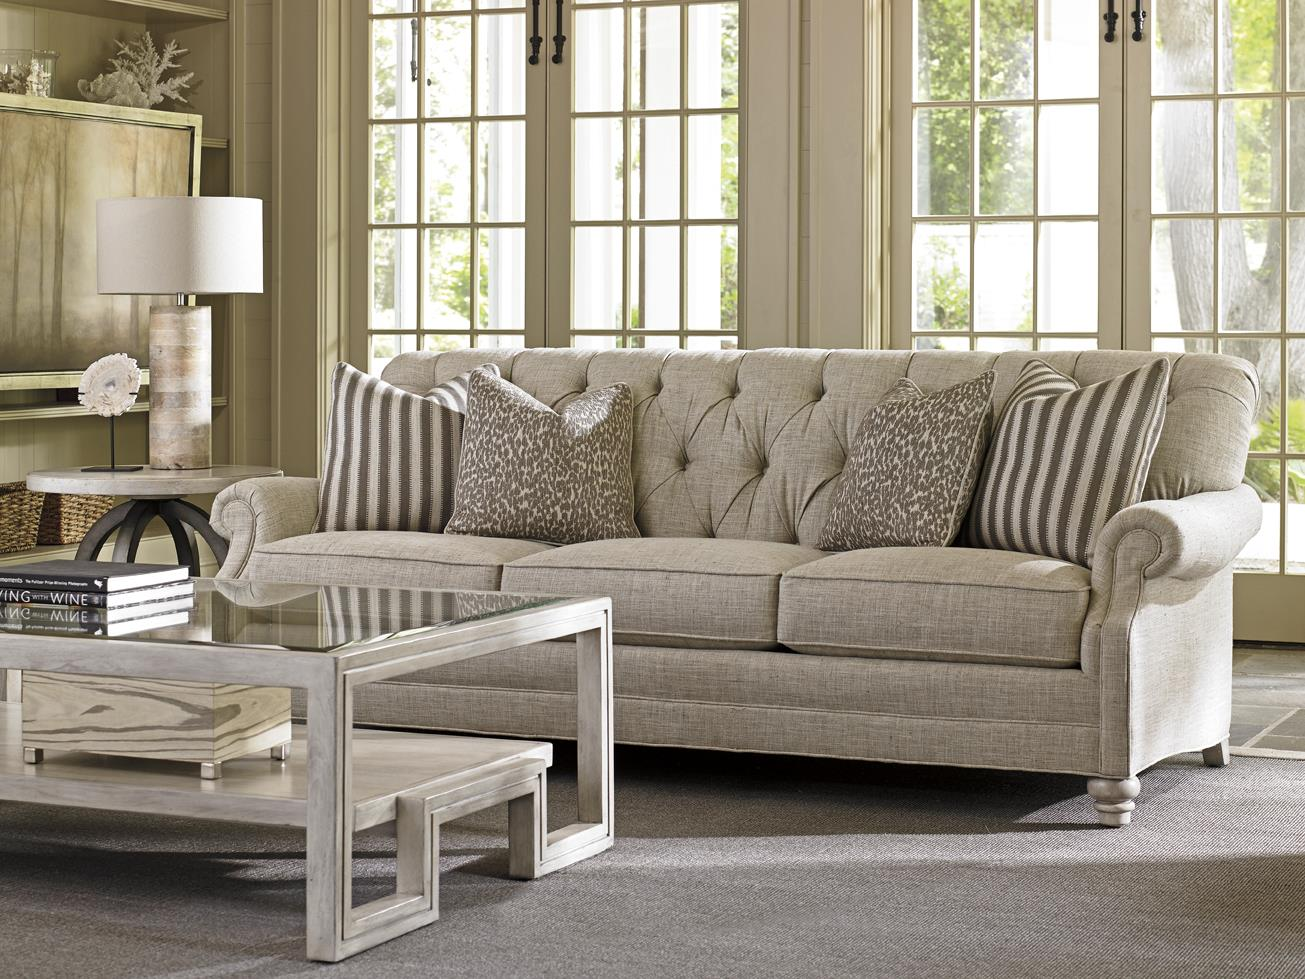 Lexington Oyster Bay Greenport Tufted Sofa With Scoop